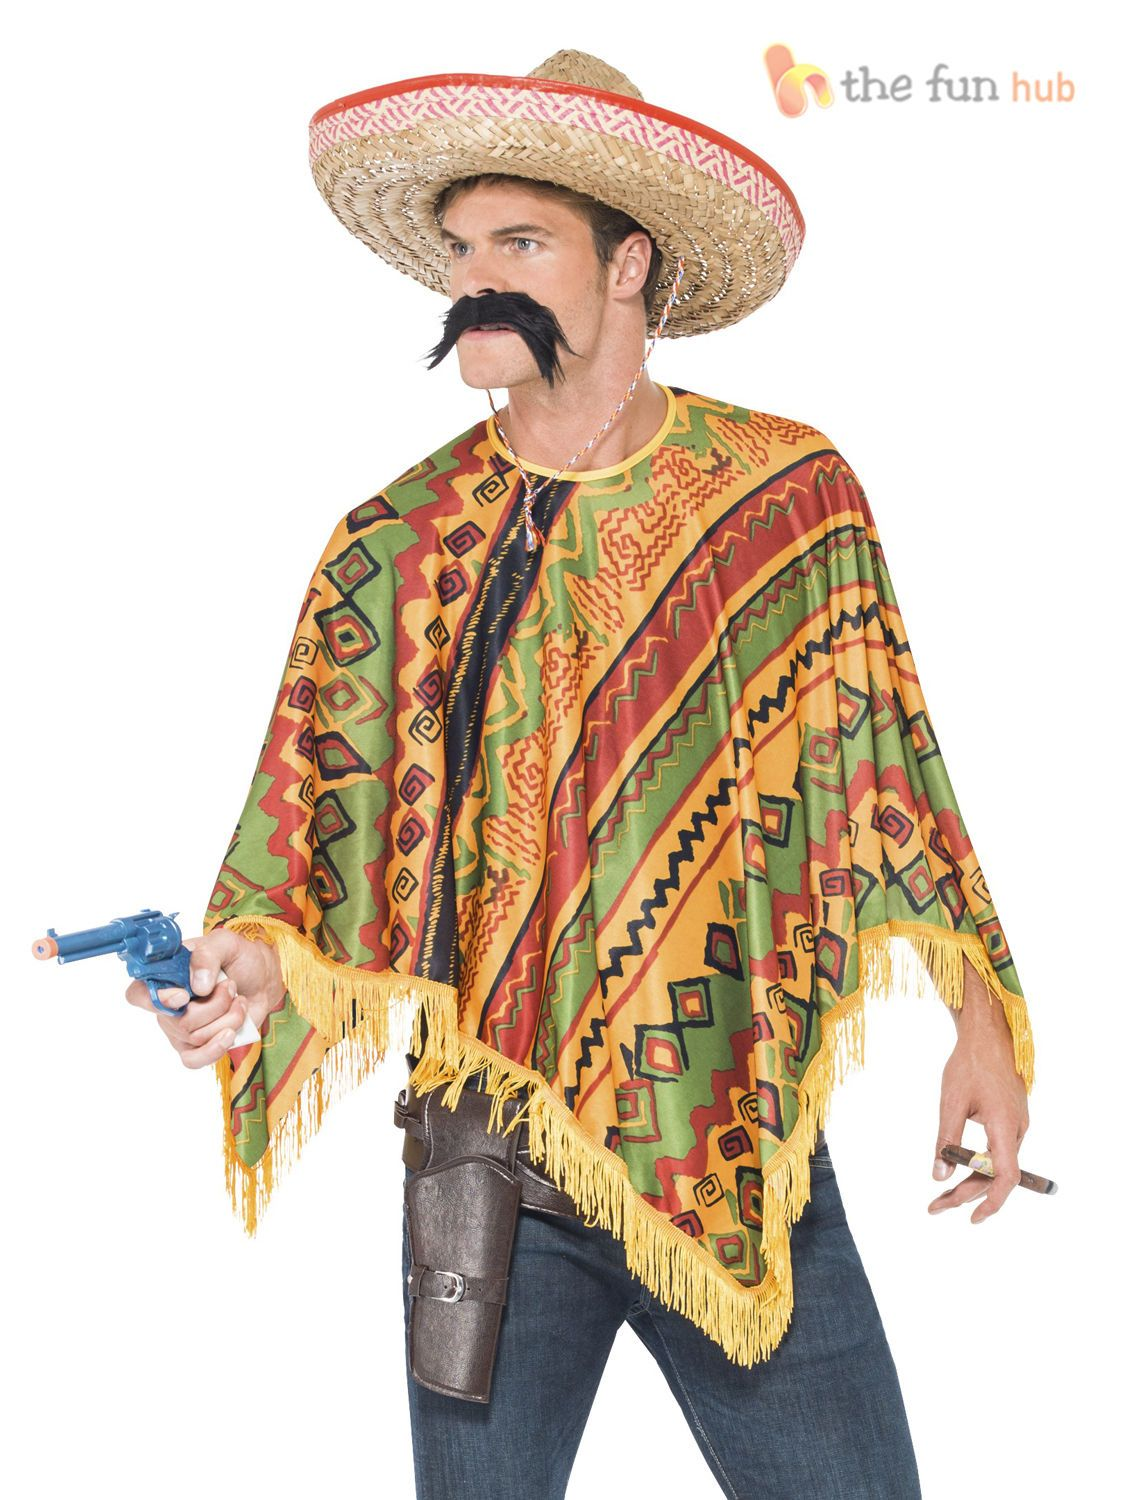 LARGE MEXICAN SOMBRERO SET ADULTS STRAW BANDIT HAT WILD WEST HOLIDAY FANCY DRESS